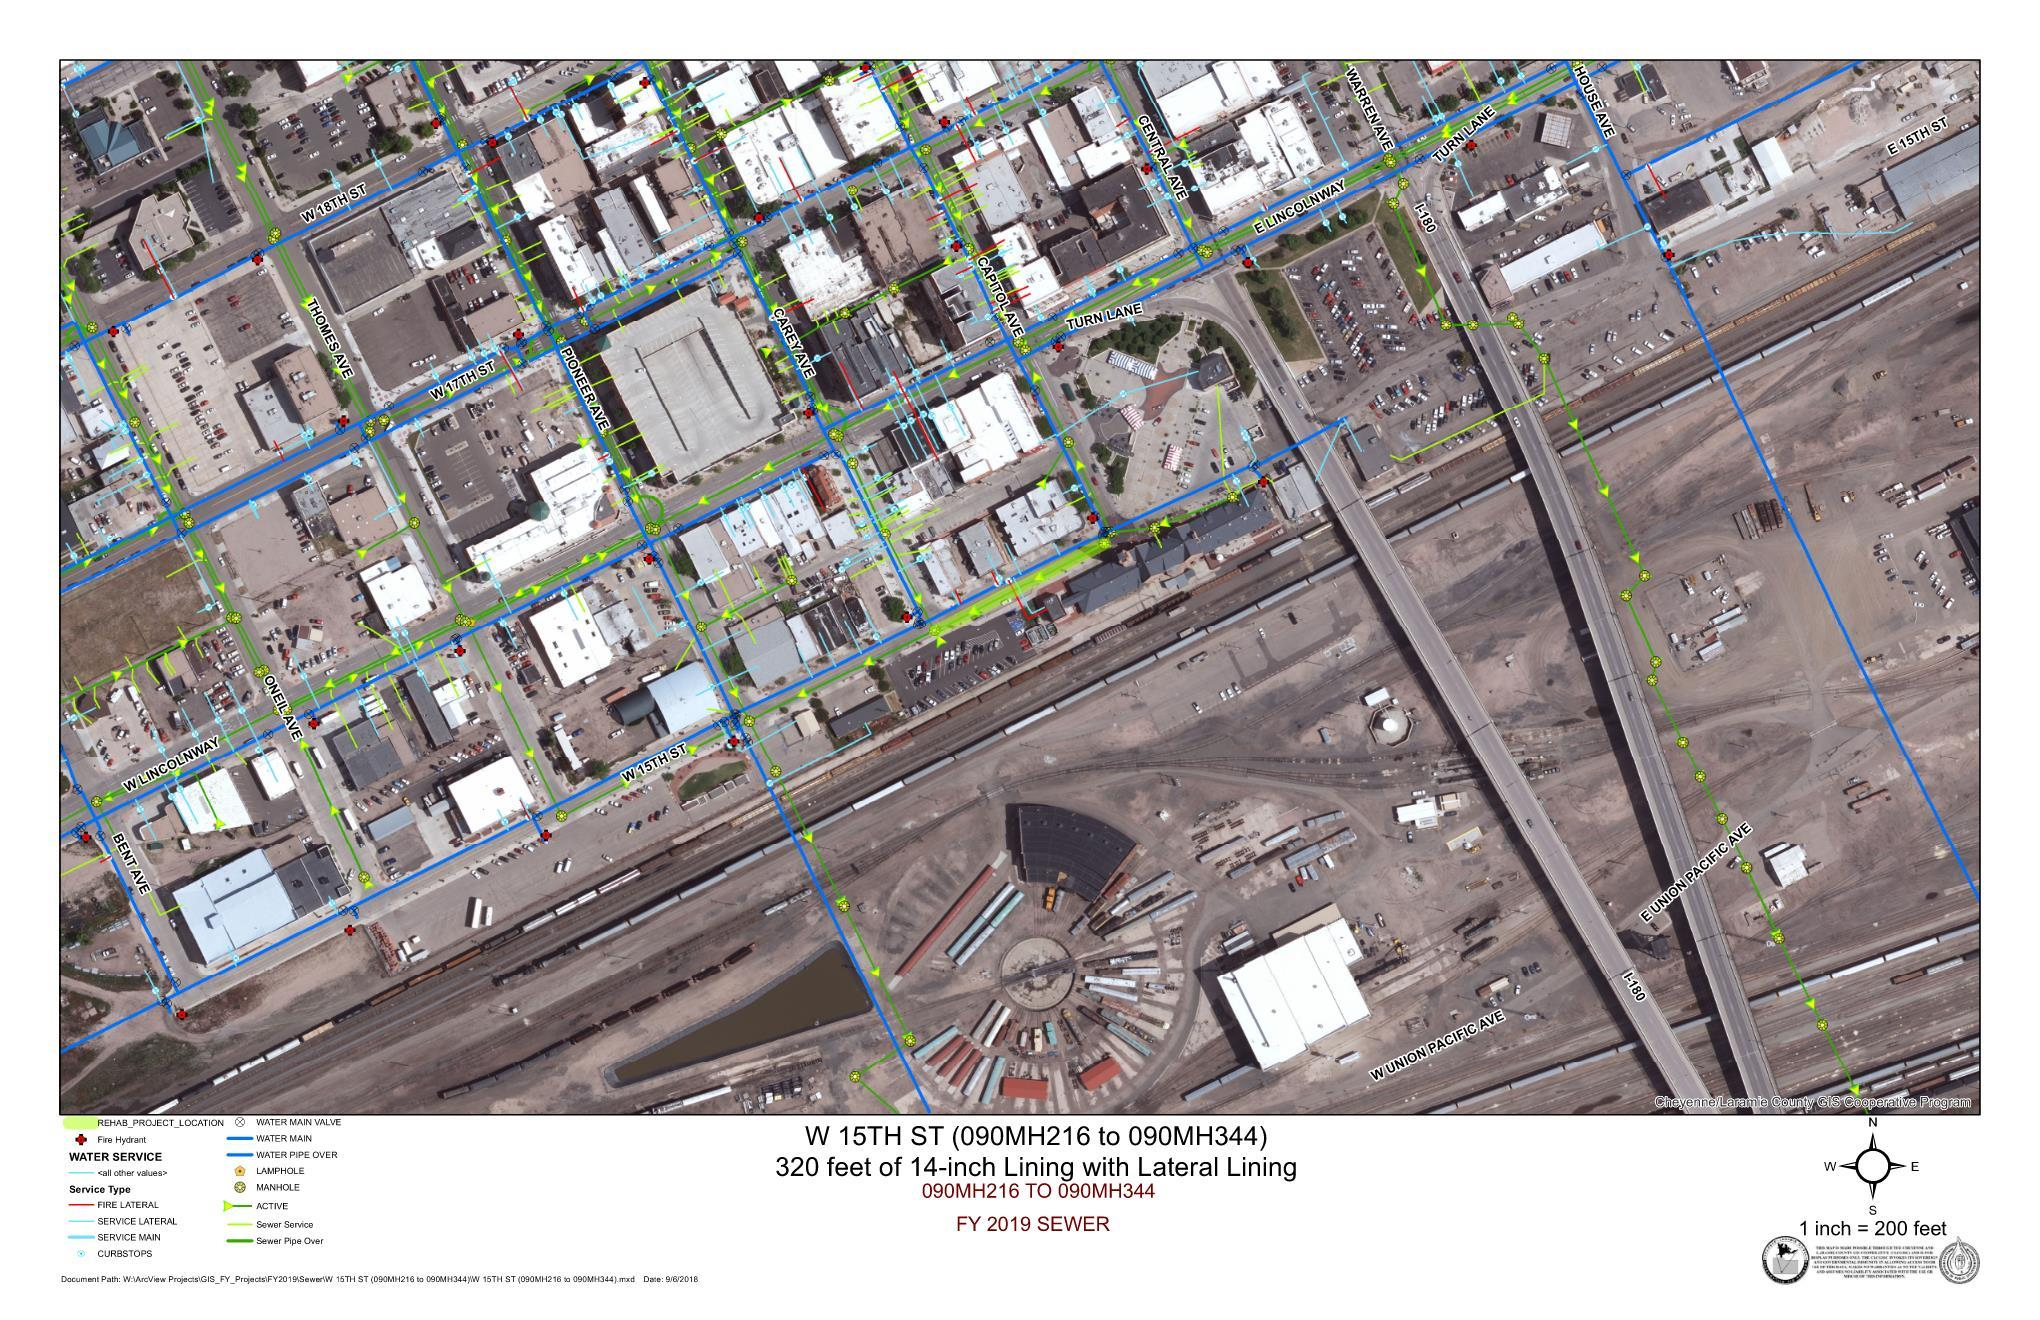 FY19-Sewer-Rehab-W15th.jpg